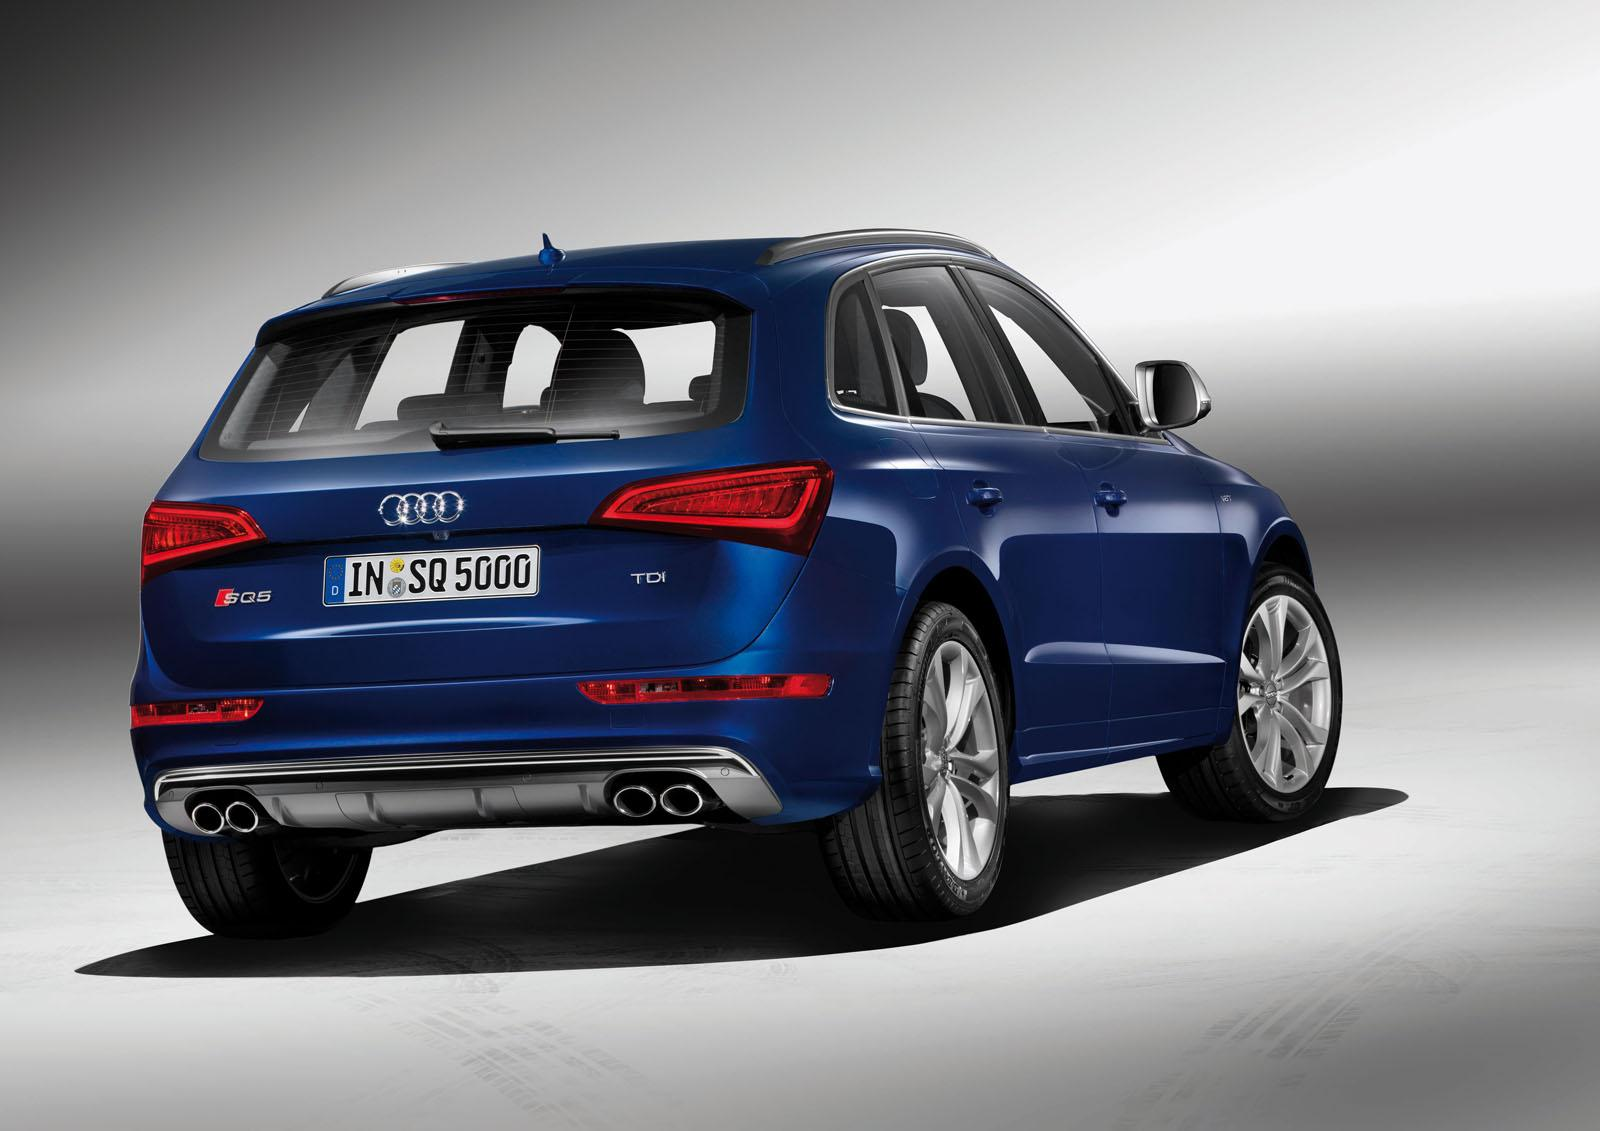 audi q5 twin turbo 3 0 diesel with 230kw to debut at le mans performancedrive. Black Bedroom Furniture Sets. Home Design Ideas